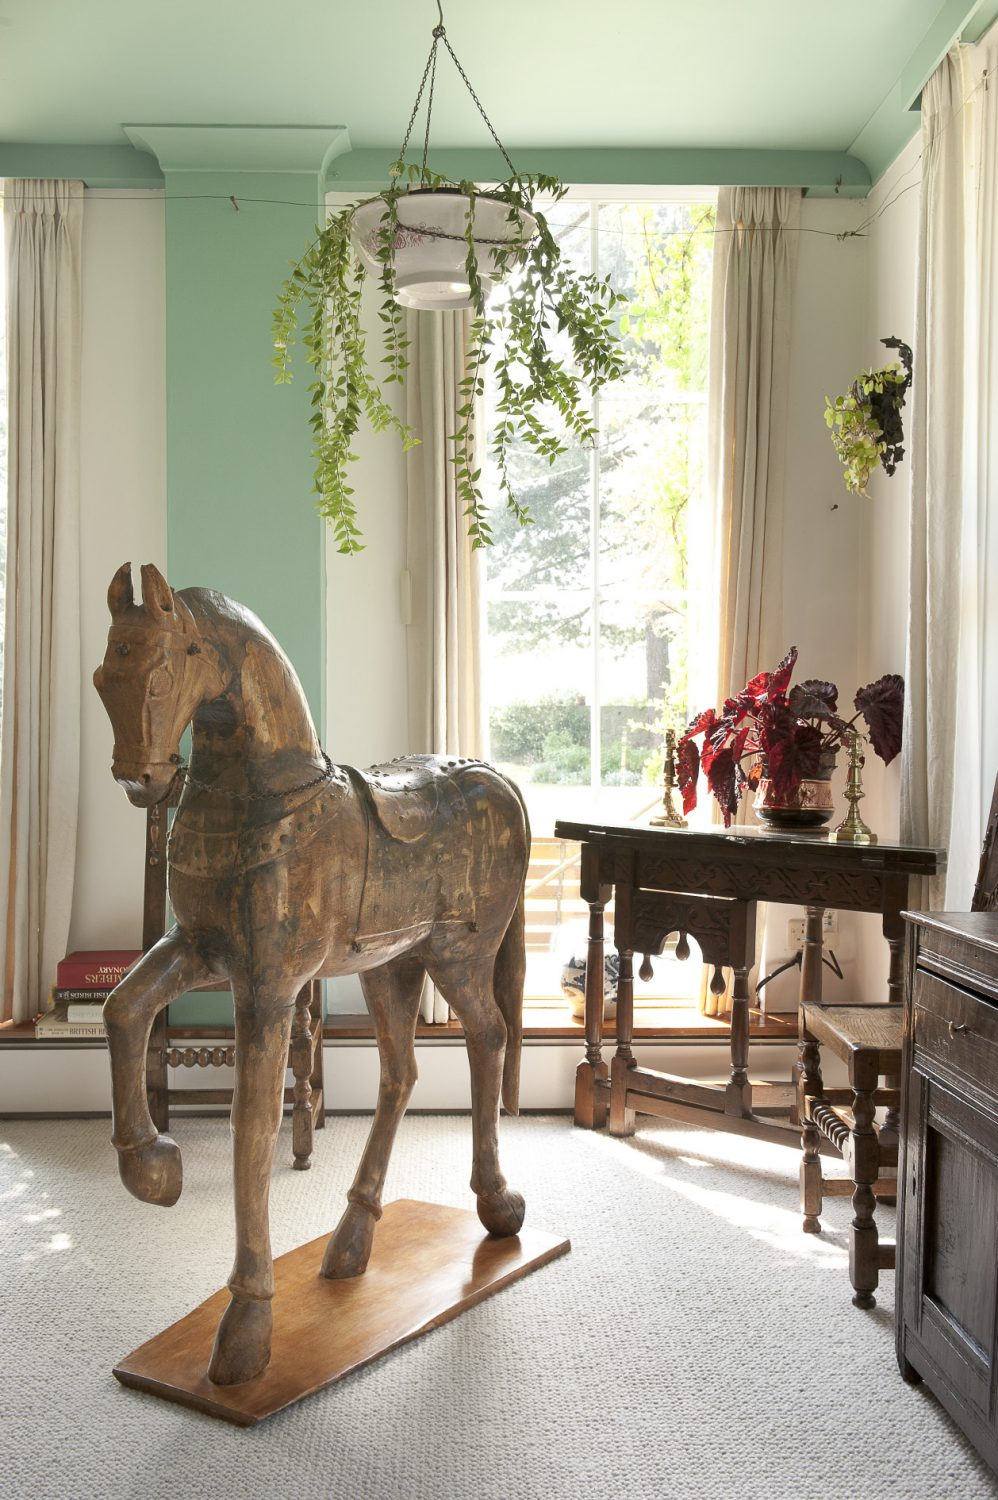 In the opposite corner of the room stands a wooden statue of a Mongolian pony that came from Afghanistan